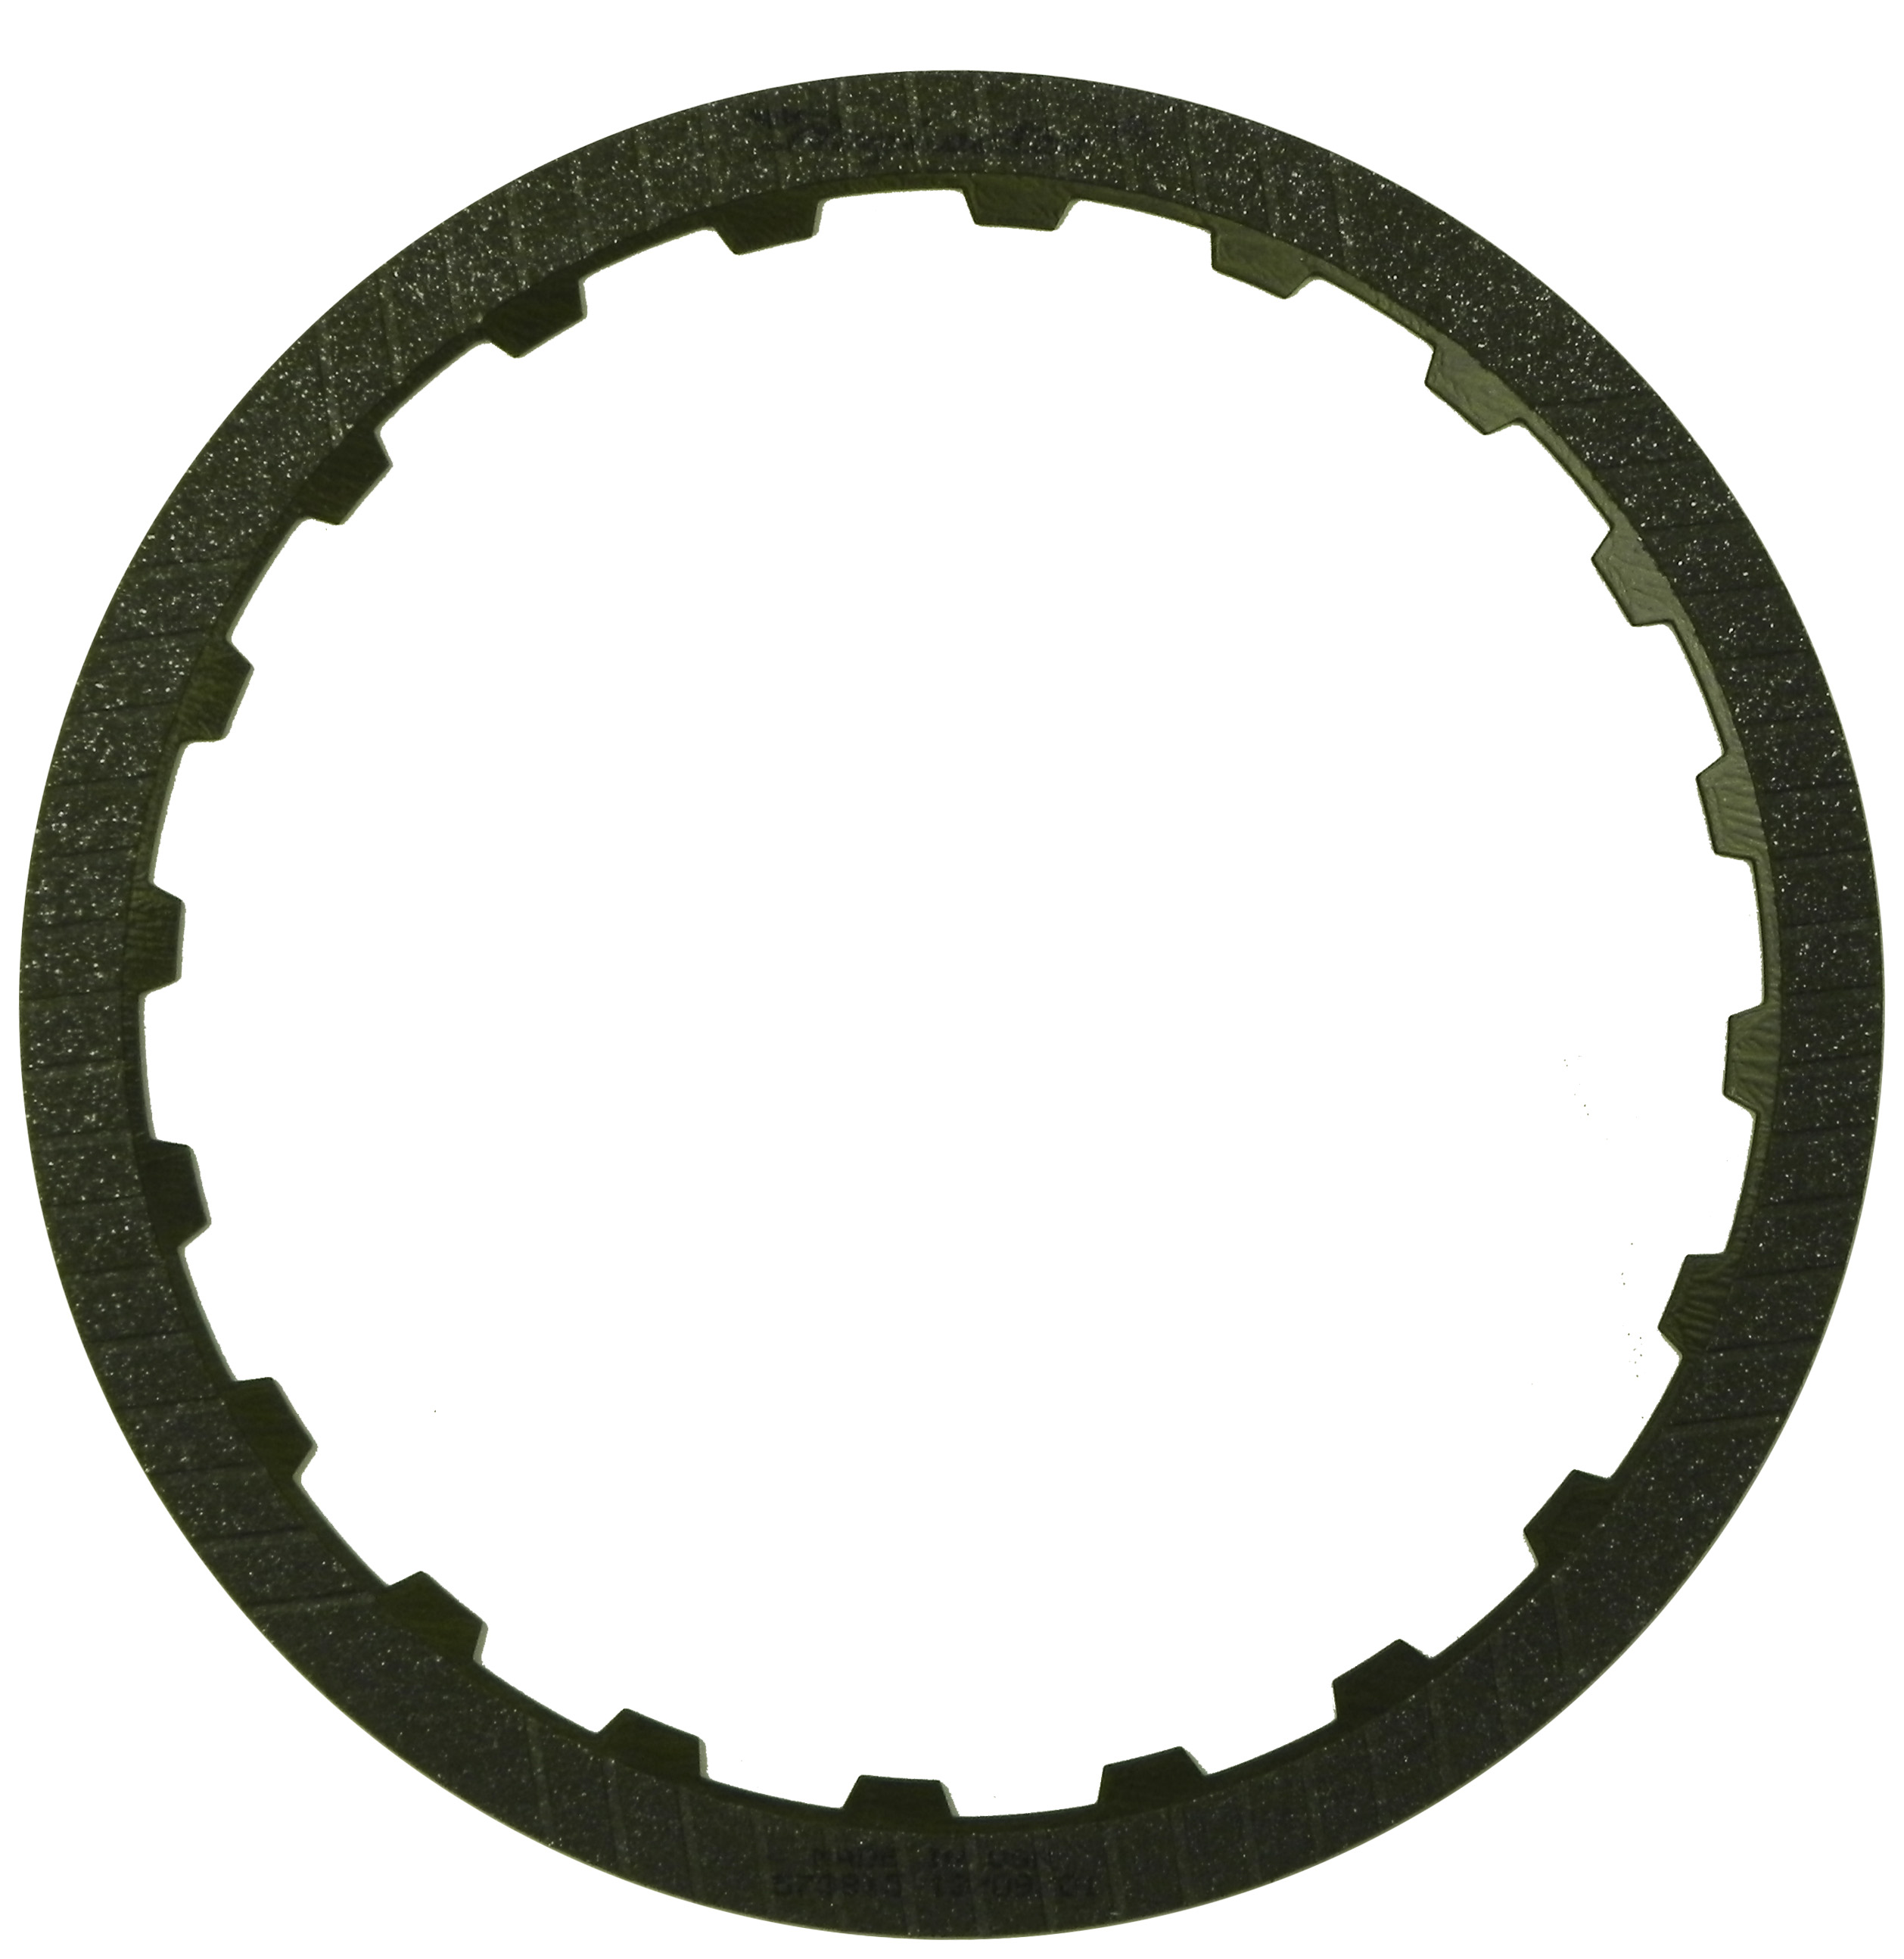 R573815 | 1988-1998 Friction Clutch Plate Graphitic Overrun Graphitic RG4R01A, JR403E